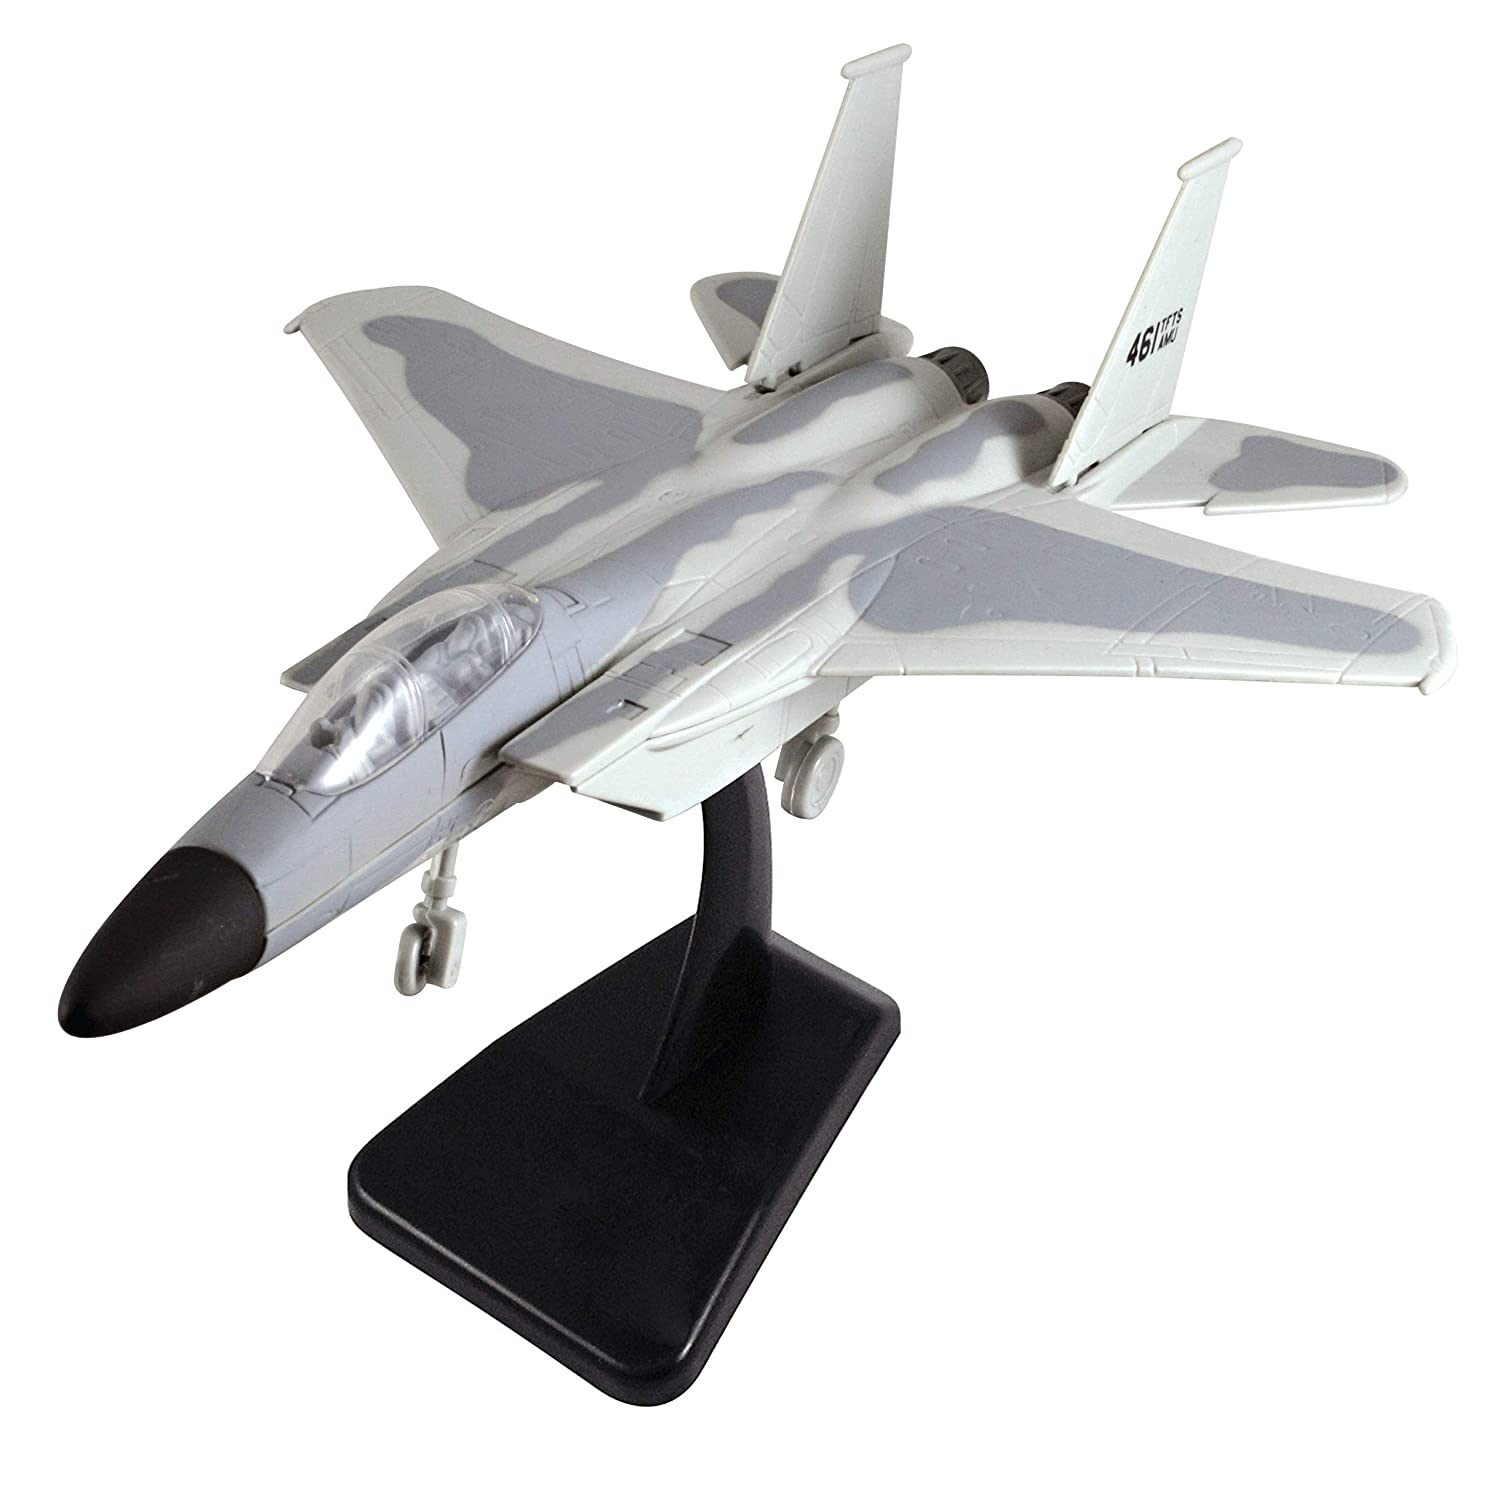 Assembly Required Sky Pilot 1:72 Scale F-15 Eagle Model Kit